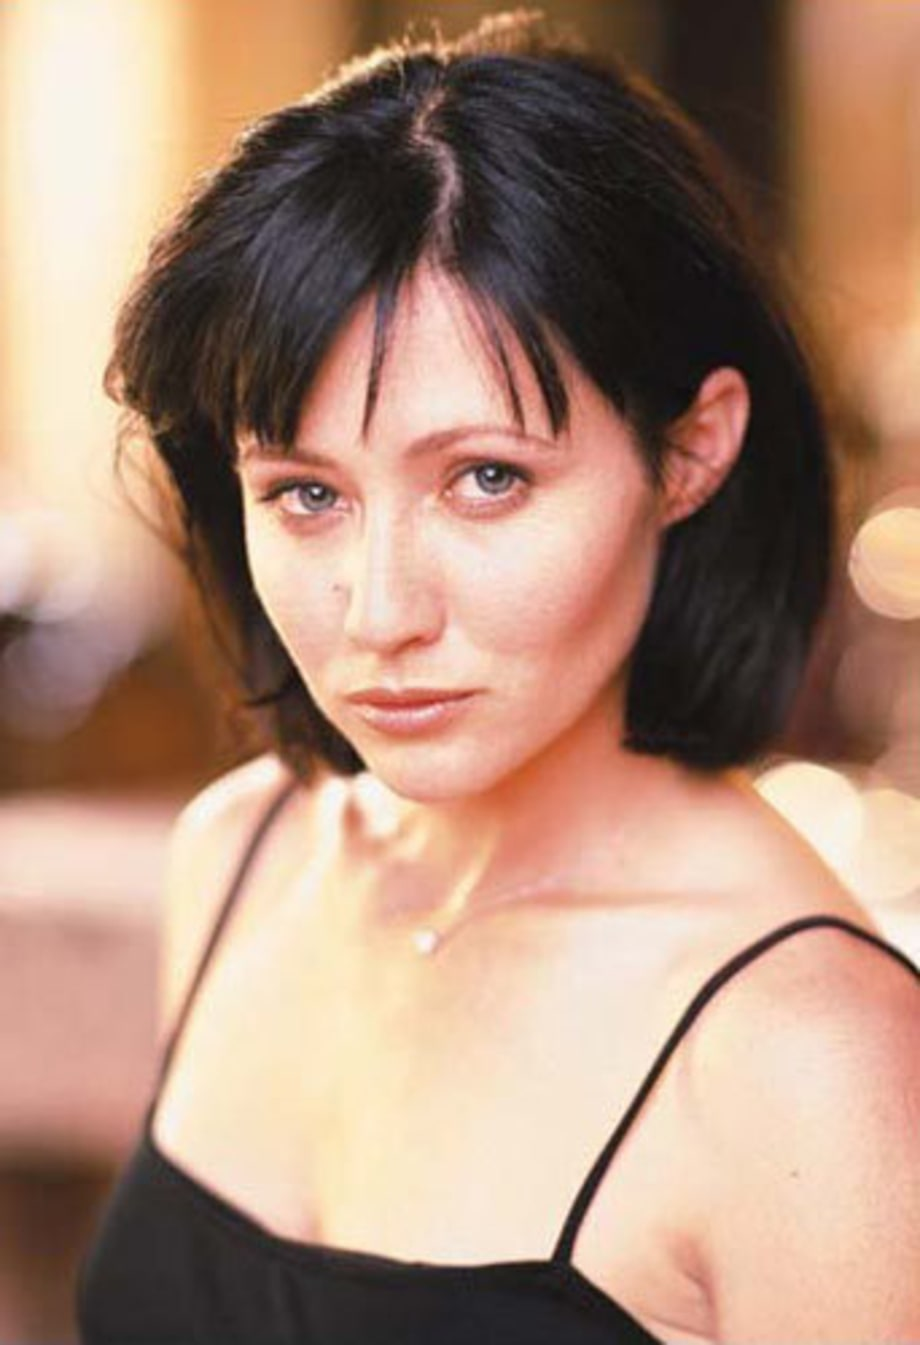 More Shannen Doherty